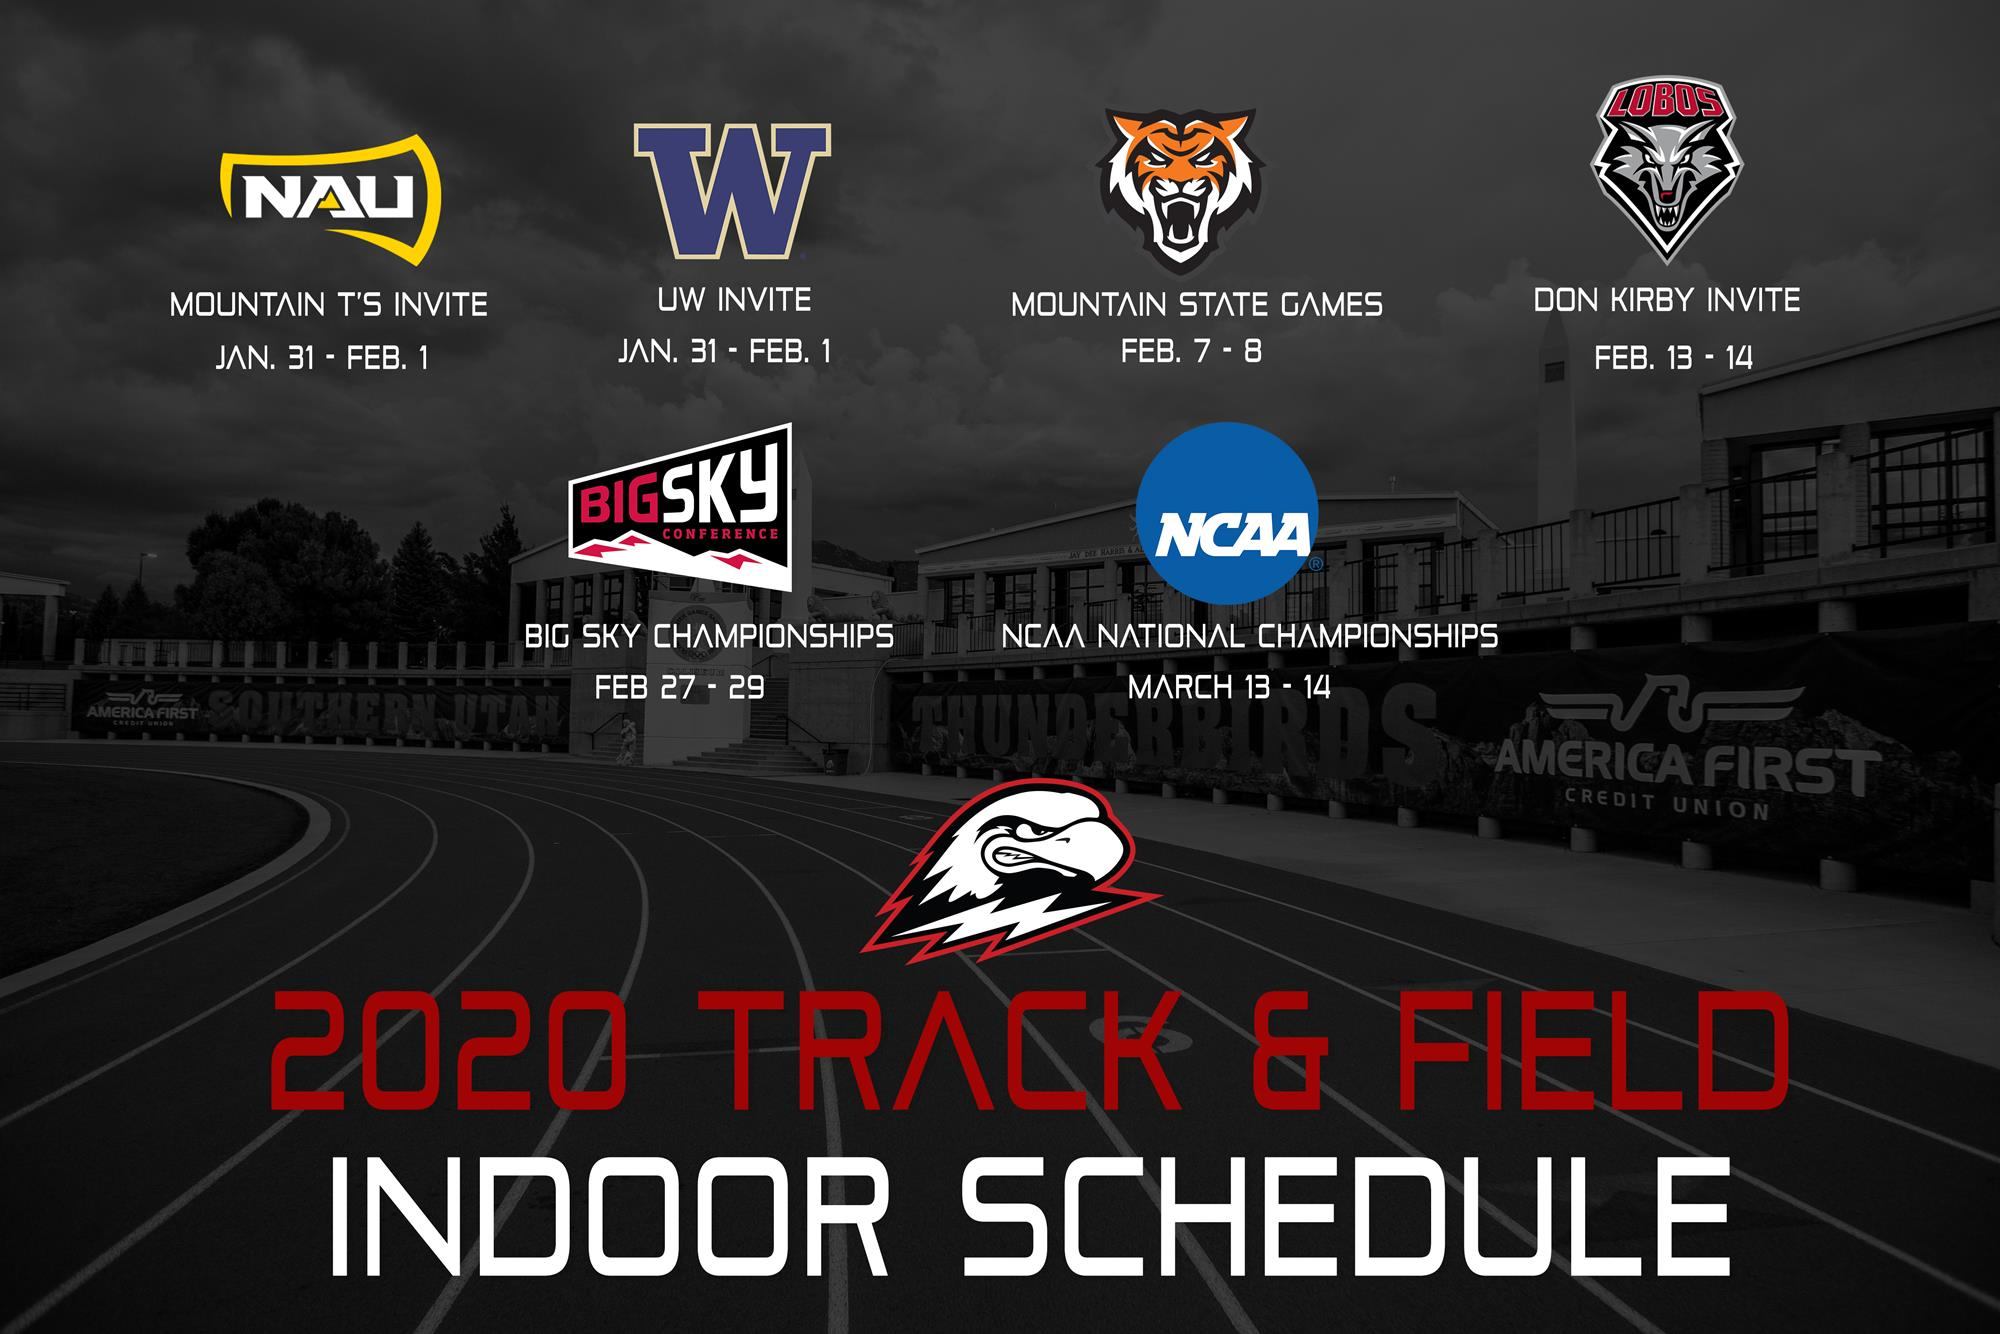 2020 Bowl Games Schedule.Thunderbird Track And Field Announces 2020 Indoor Schedule